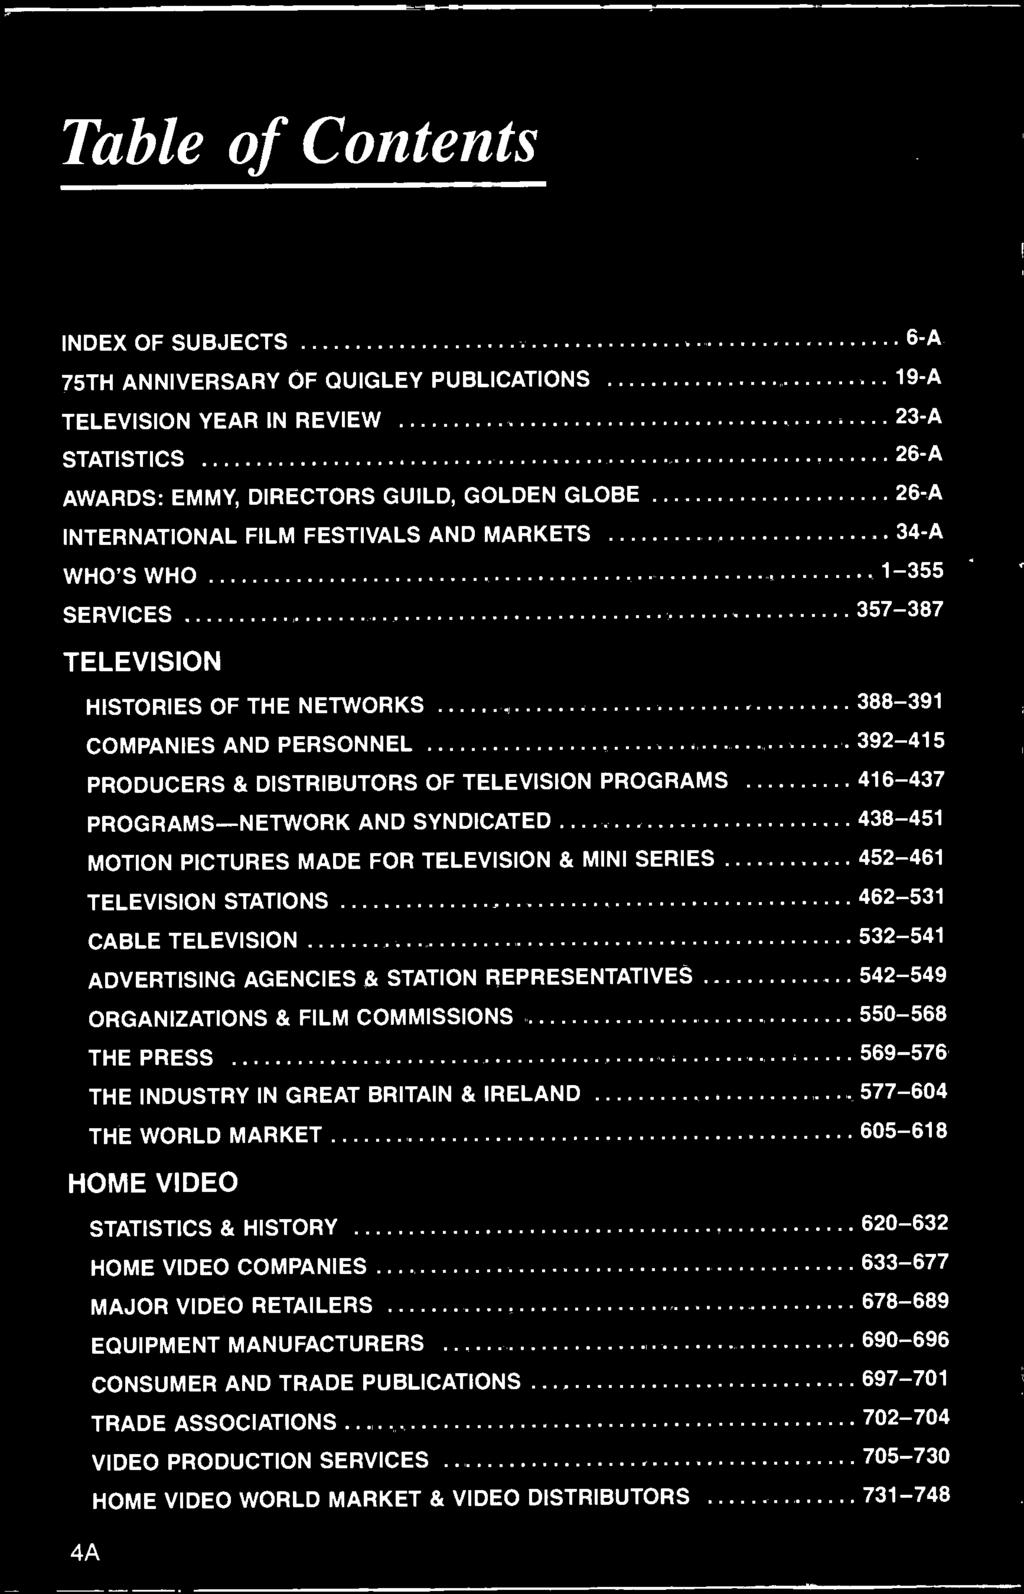 PROGRAMS -NETWORK AND SYNDICATED 438-451 MOTION PICTURES MADE FOR TELEVISION & MINI SERIES 452-461 TELEVISION STATIONS 462-531 CABLE TELEVISION 532-541 ADVERTISING AGENCIES & STATION REPRESENTATIVES